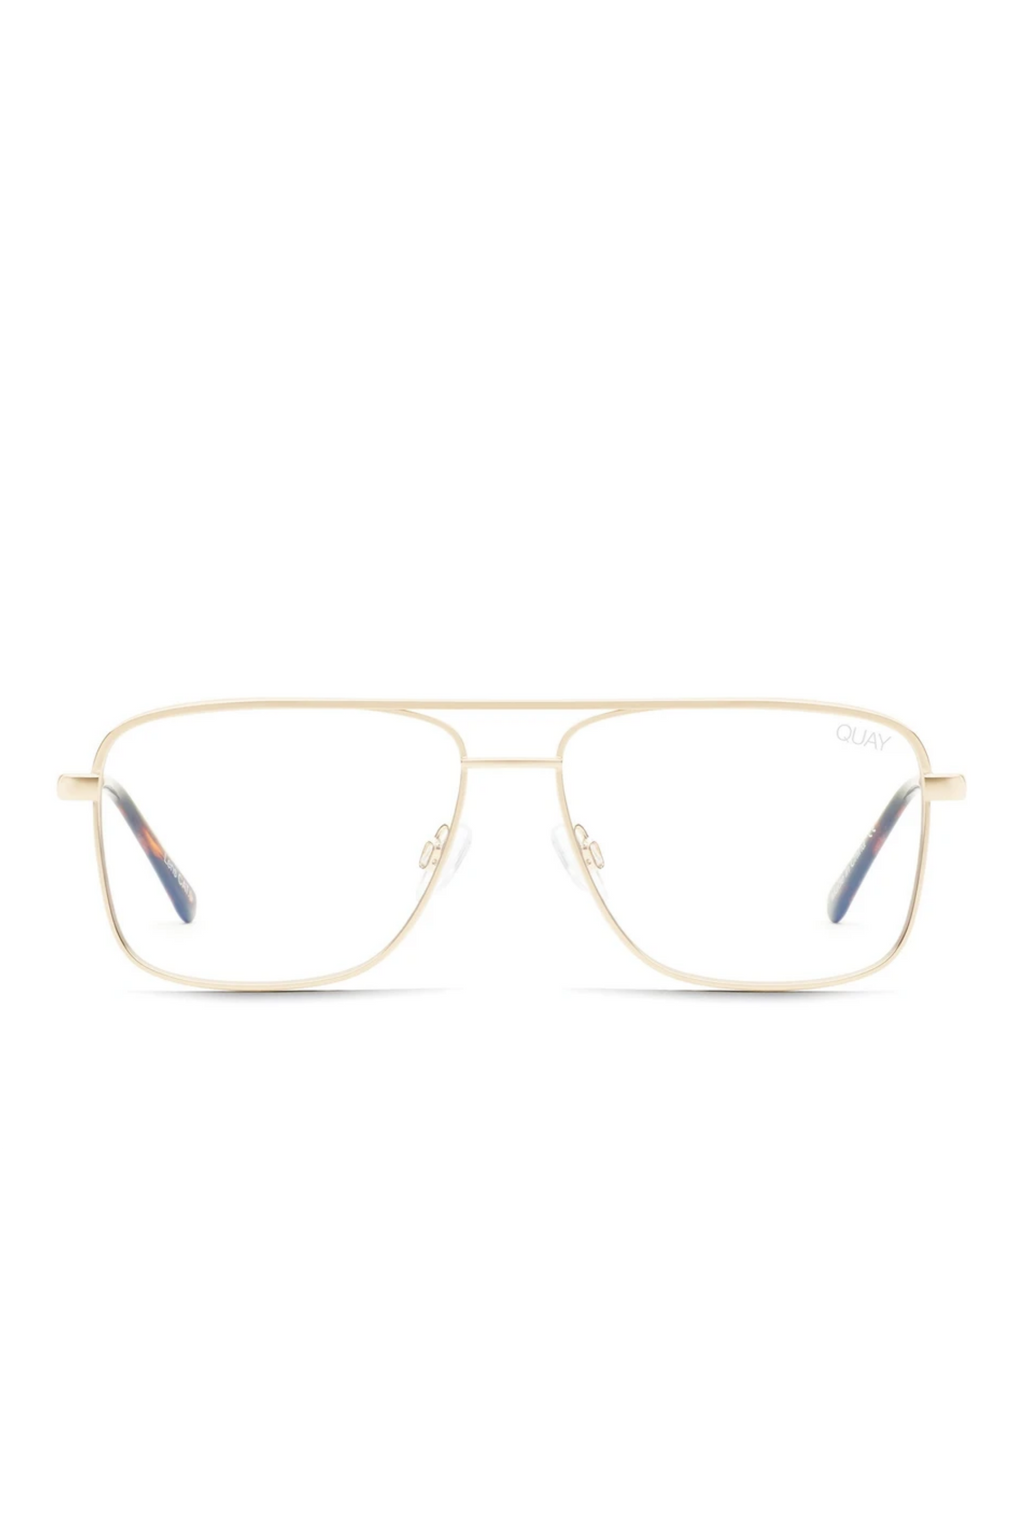 Quay Poster Boy Mini Blue Light Glasses